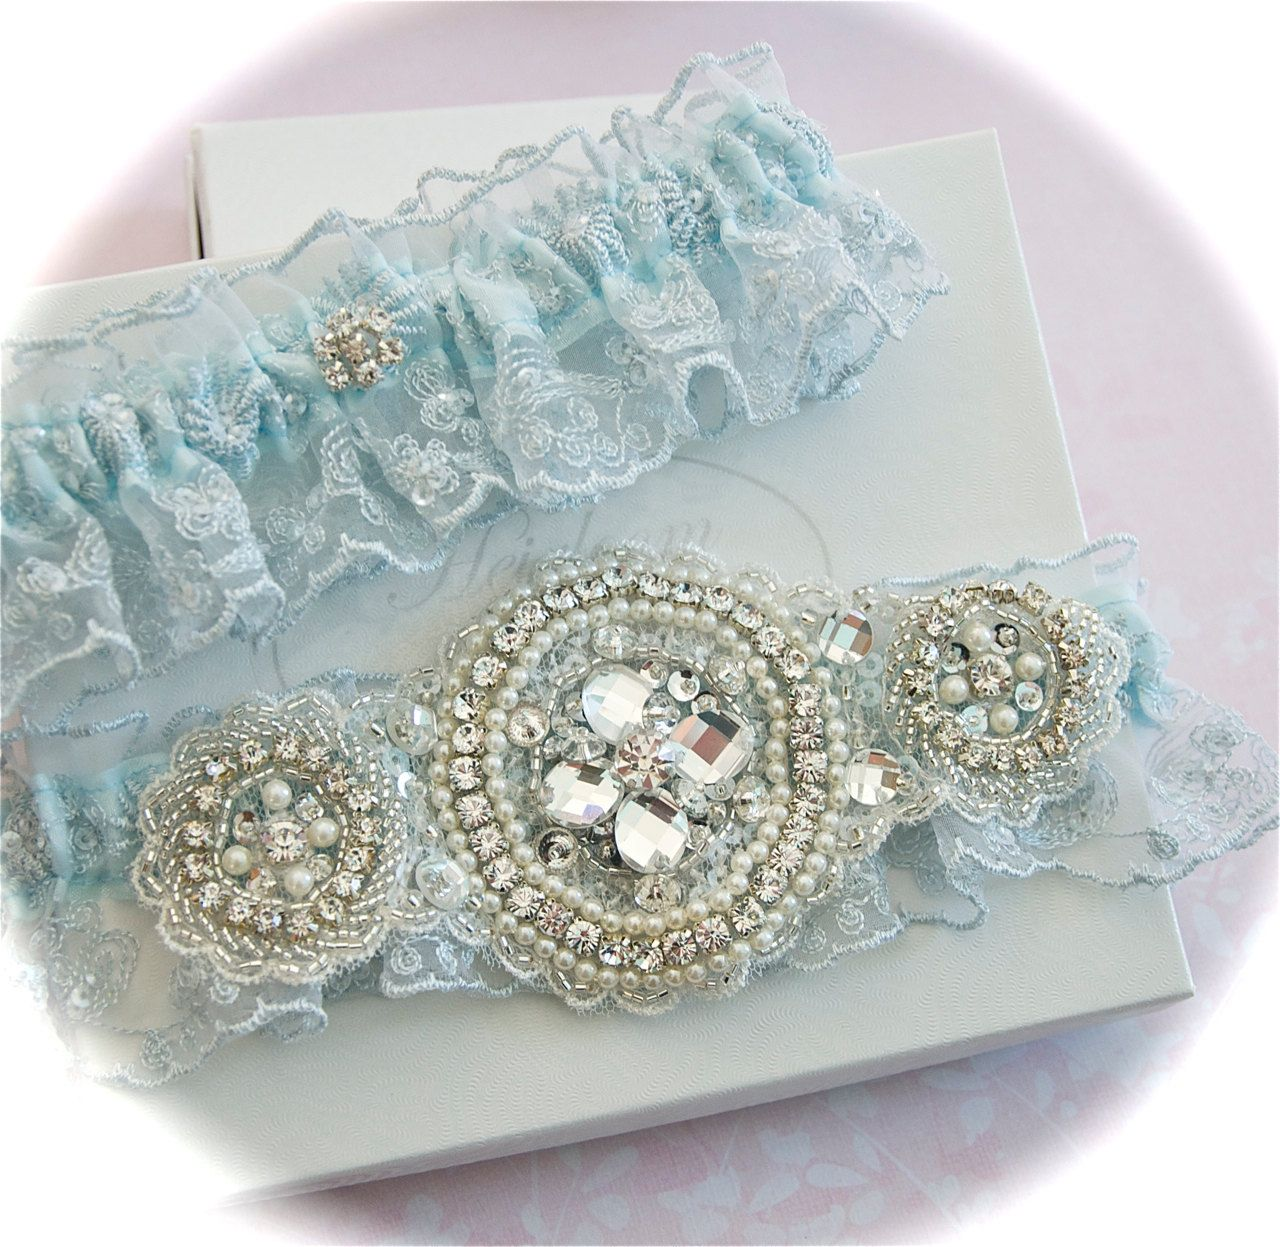 Wedding Garter Symbolism: Blue Has Been Connected To Weddings For Centuries. In